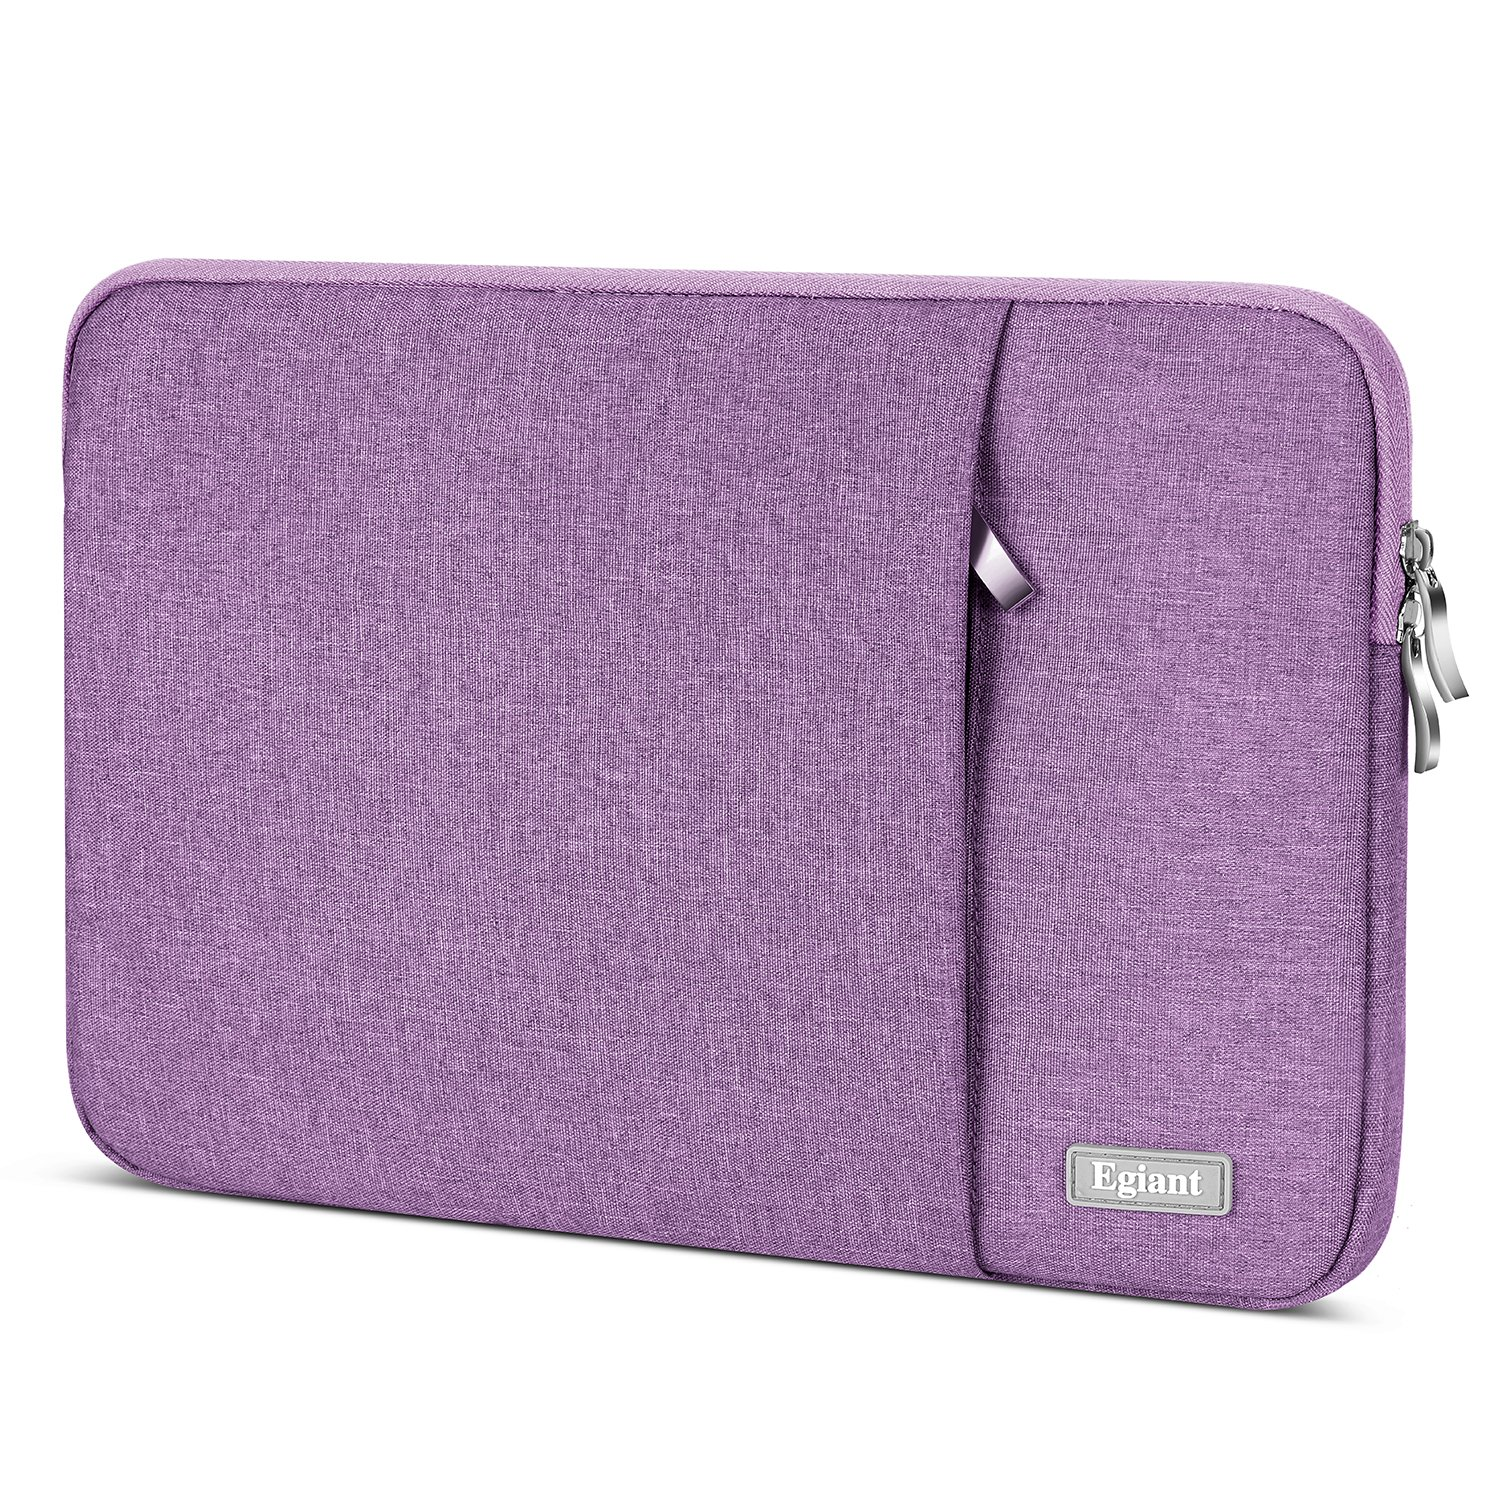 Laptop Sleeve 15.6 inch,Egiant Water Repellent Protective Fabric Notebook Bag Case Compatible F555LA/MB168B/X551,Aspire 15/Chromebook 15/ Inspiron 15.6/15.6'' Pavilion,Computer Carrying Case(Purple)